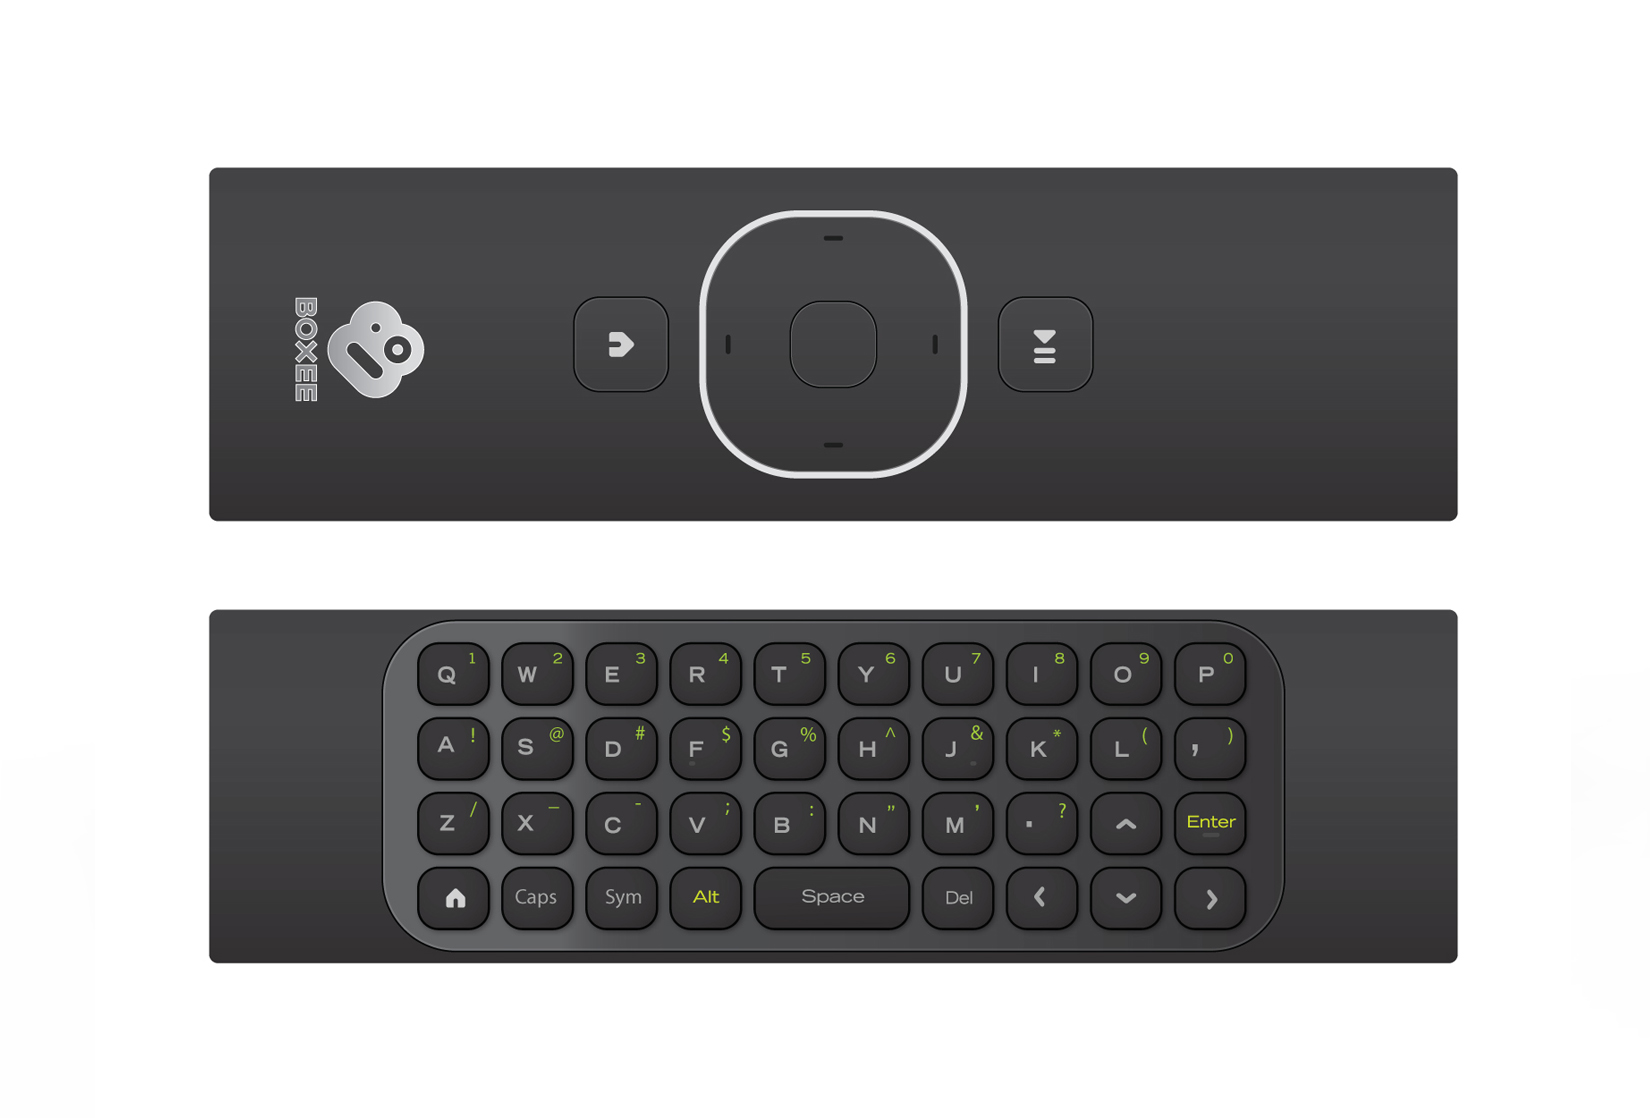 boxee-box-remote